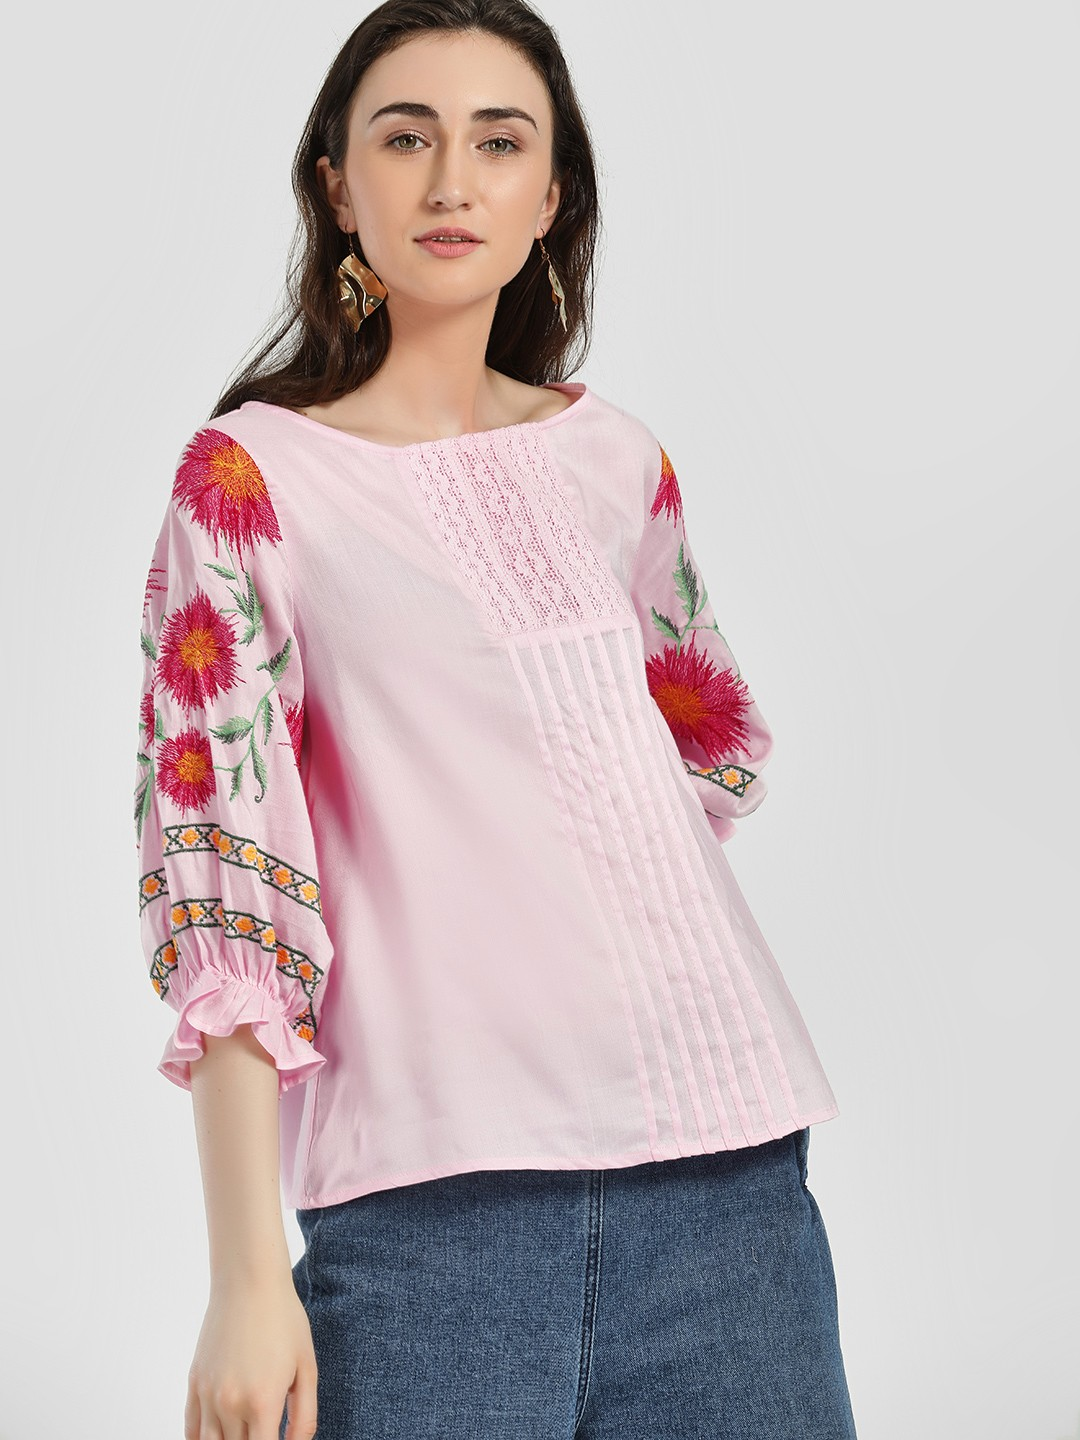 Rena Love Pink Floral Embroidered Volume Sleeve Blouse 1